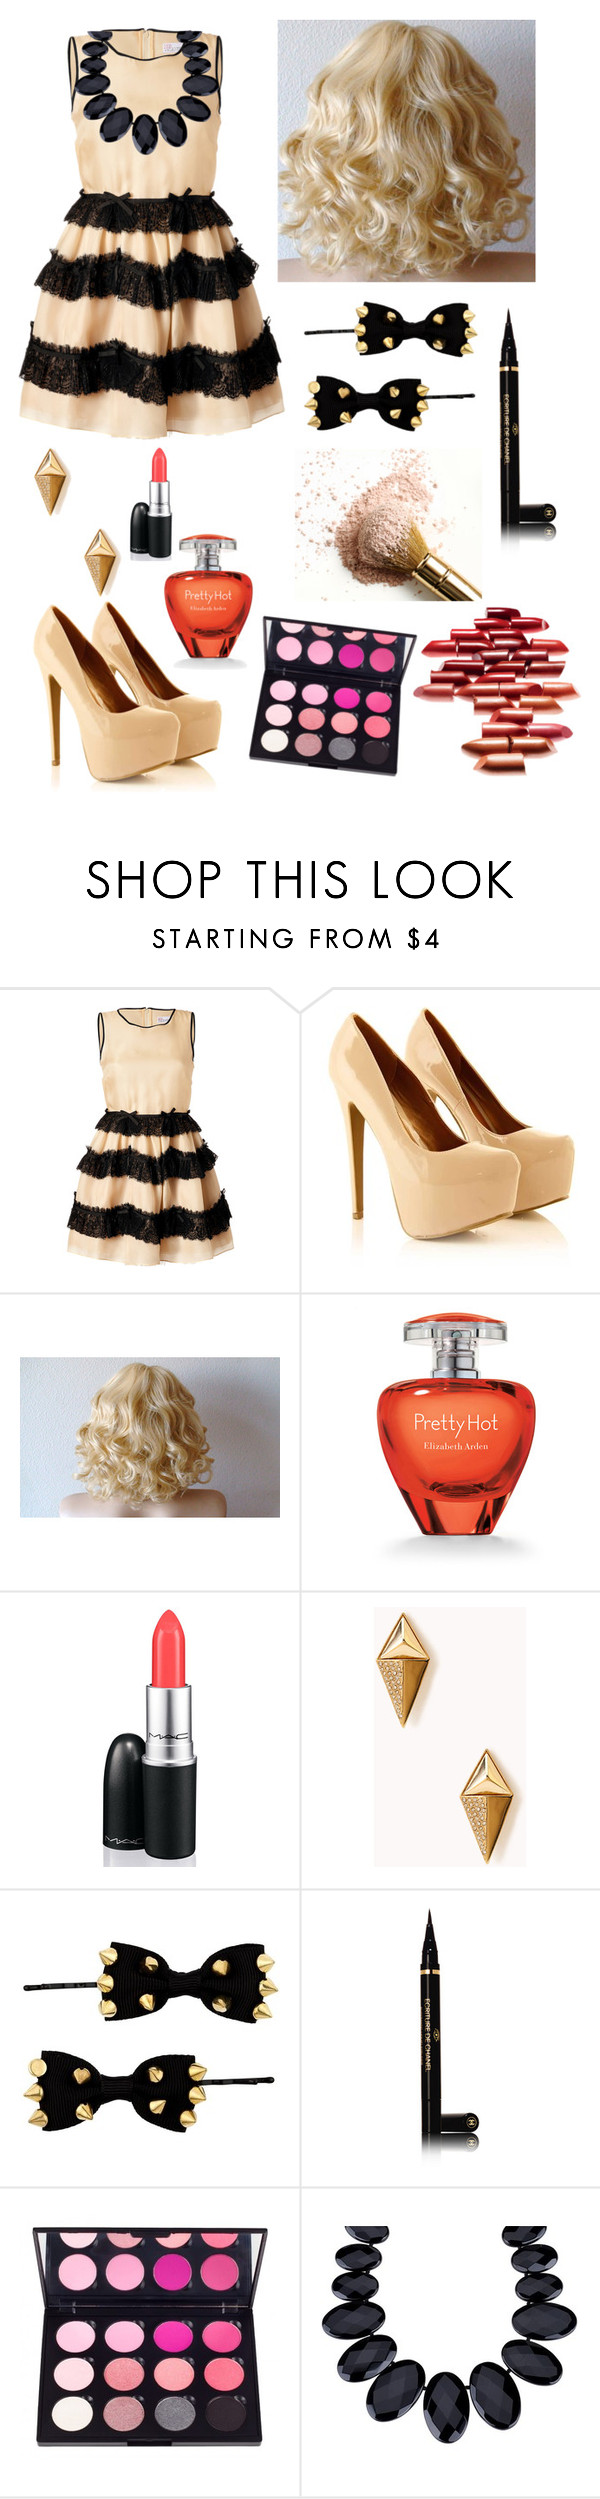 """K"" by emmajrobertson ❤ liked on Polyvore featuring beauty, RED Valentino, Elizabeth Arden, MAC Cosmetics, Forever 21, Red Herring, Chanel and Lola Rose"